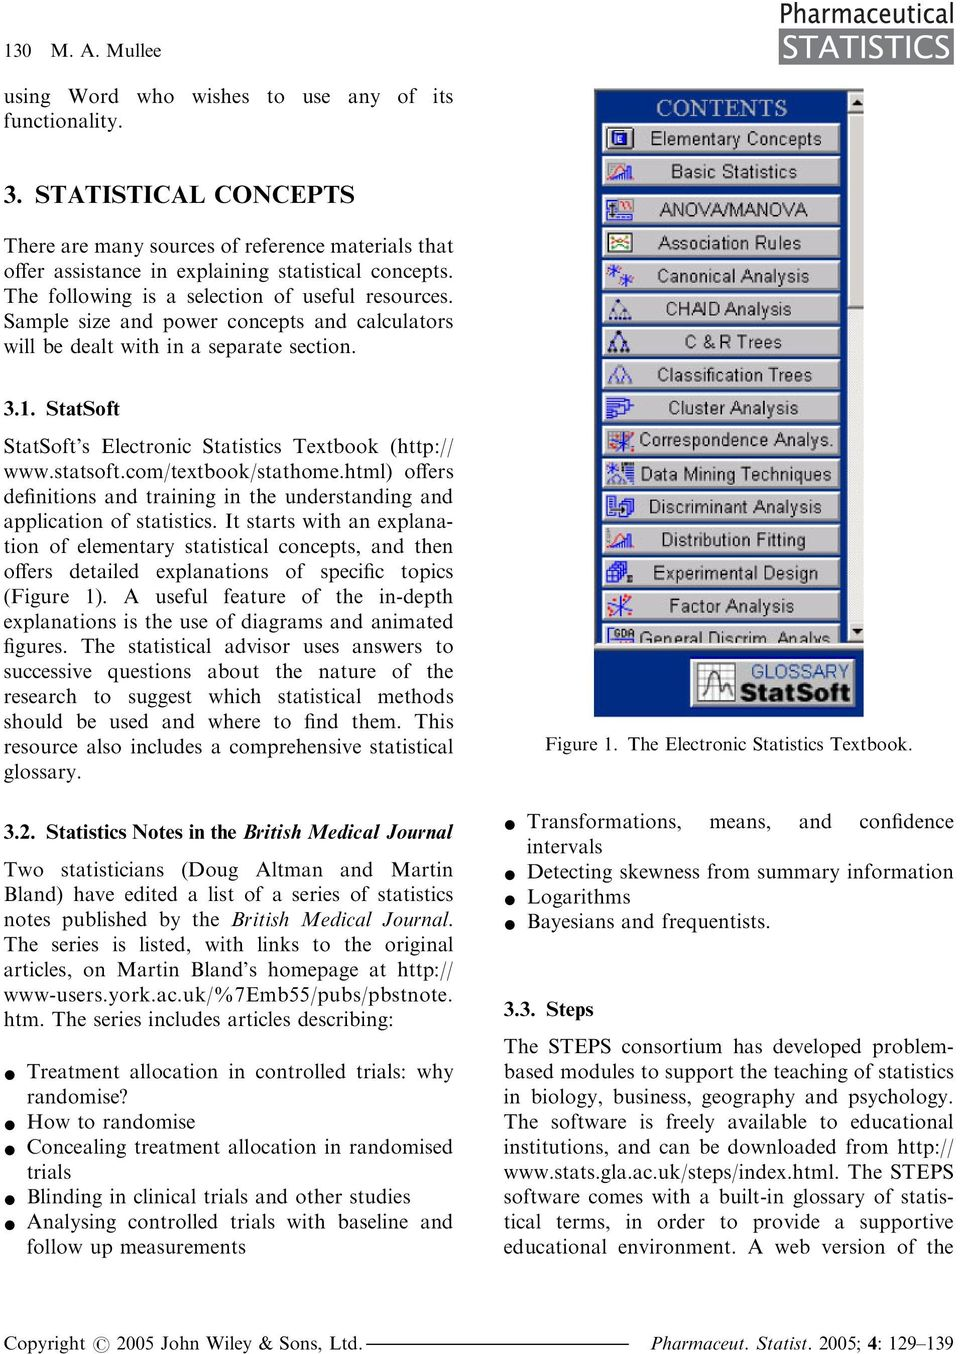 Web-based resources to assist the statistical analysis and